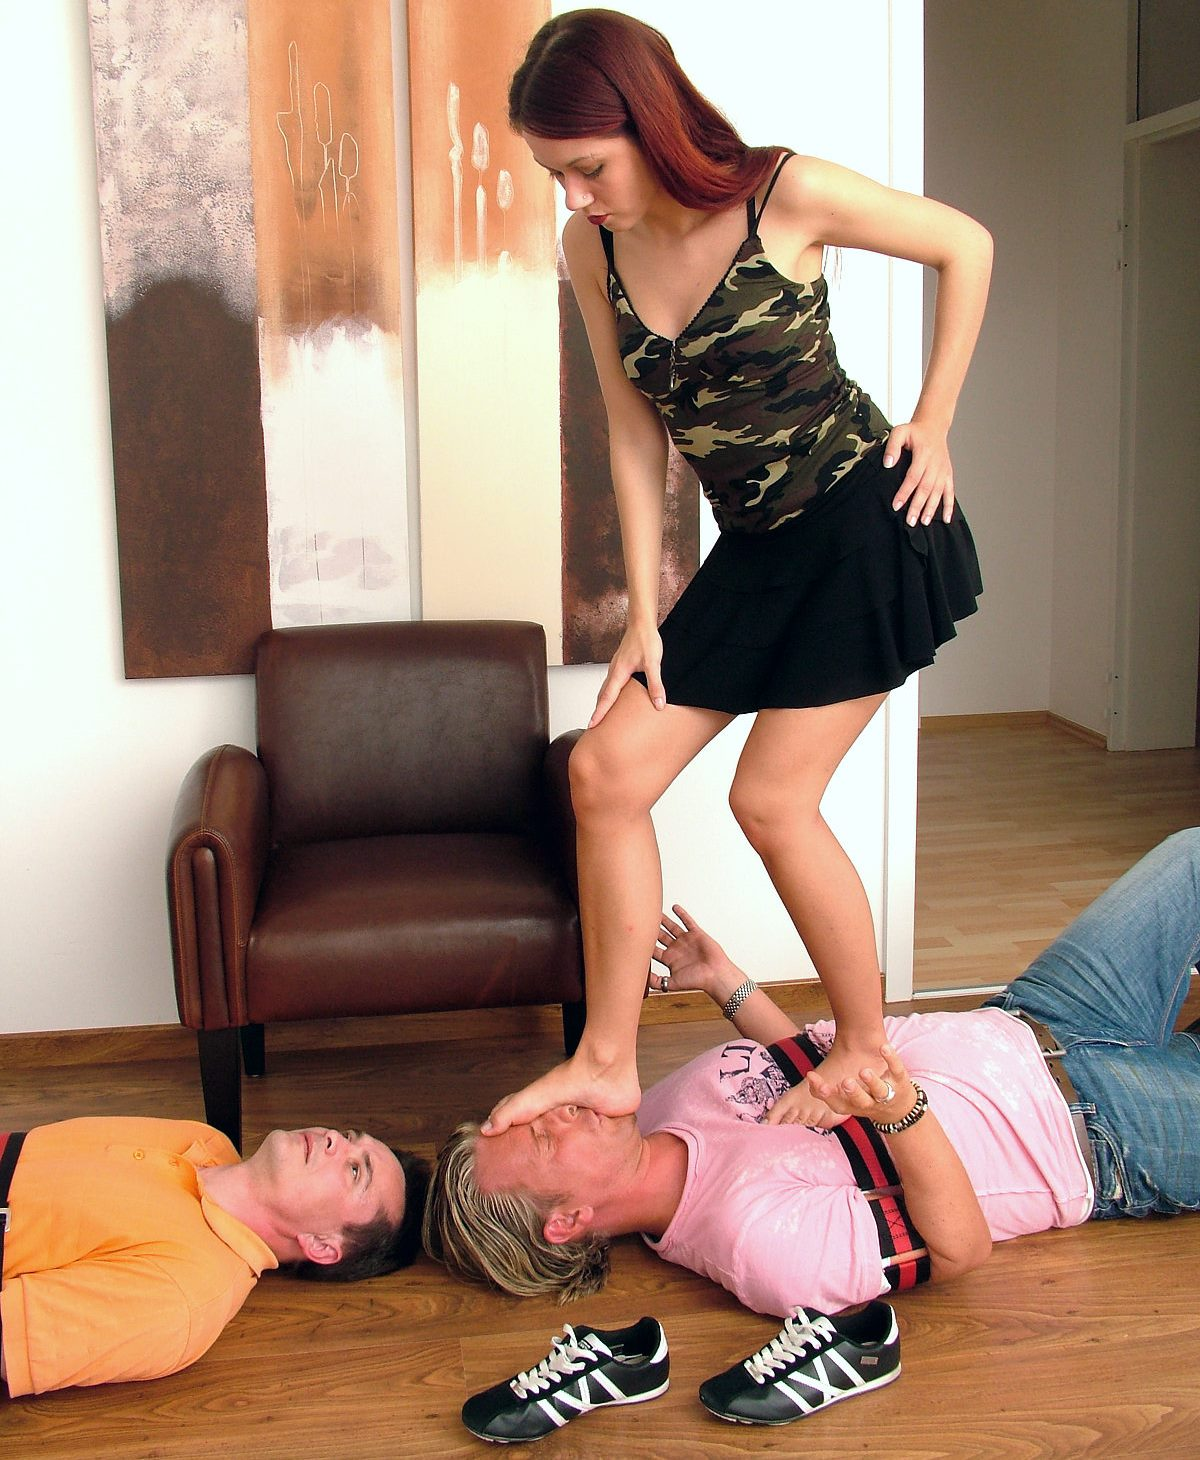 Skinny German Young Domme Luna Full Weight Trampling and FaceStomping Bare Feet Femdom